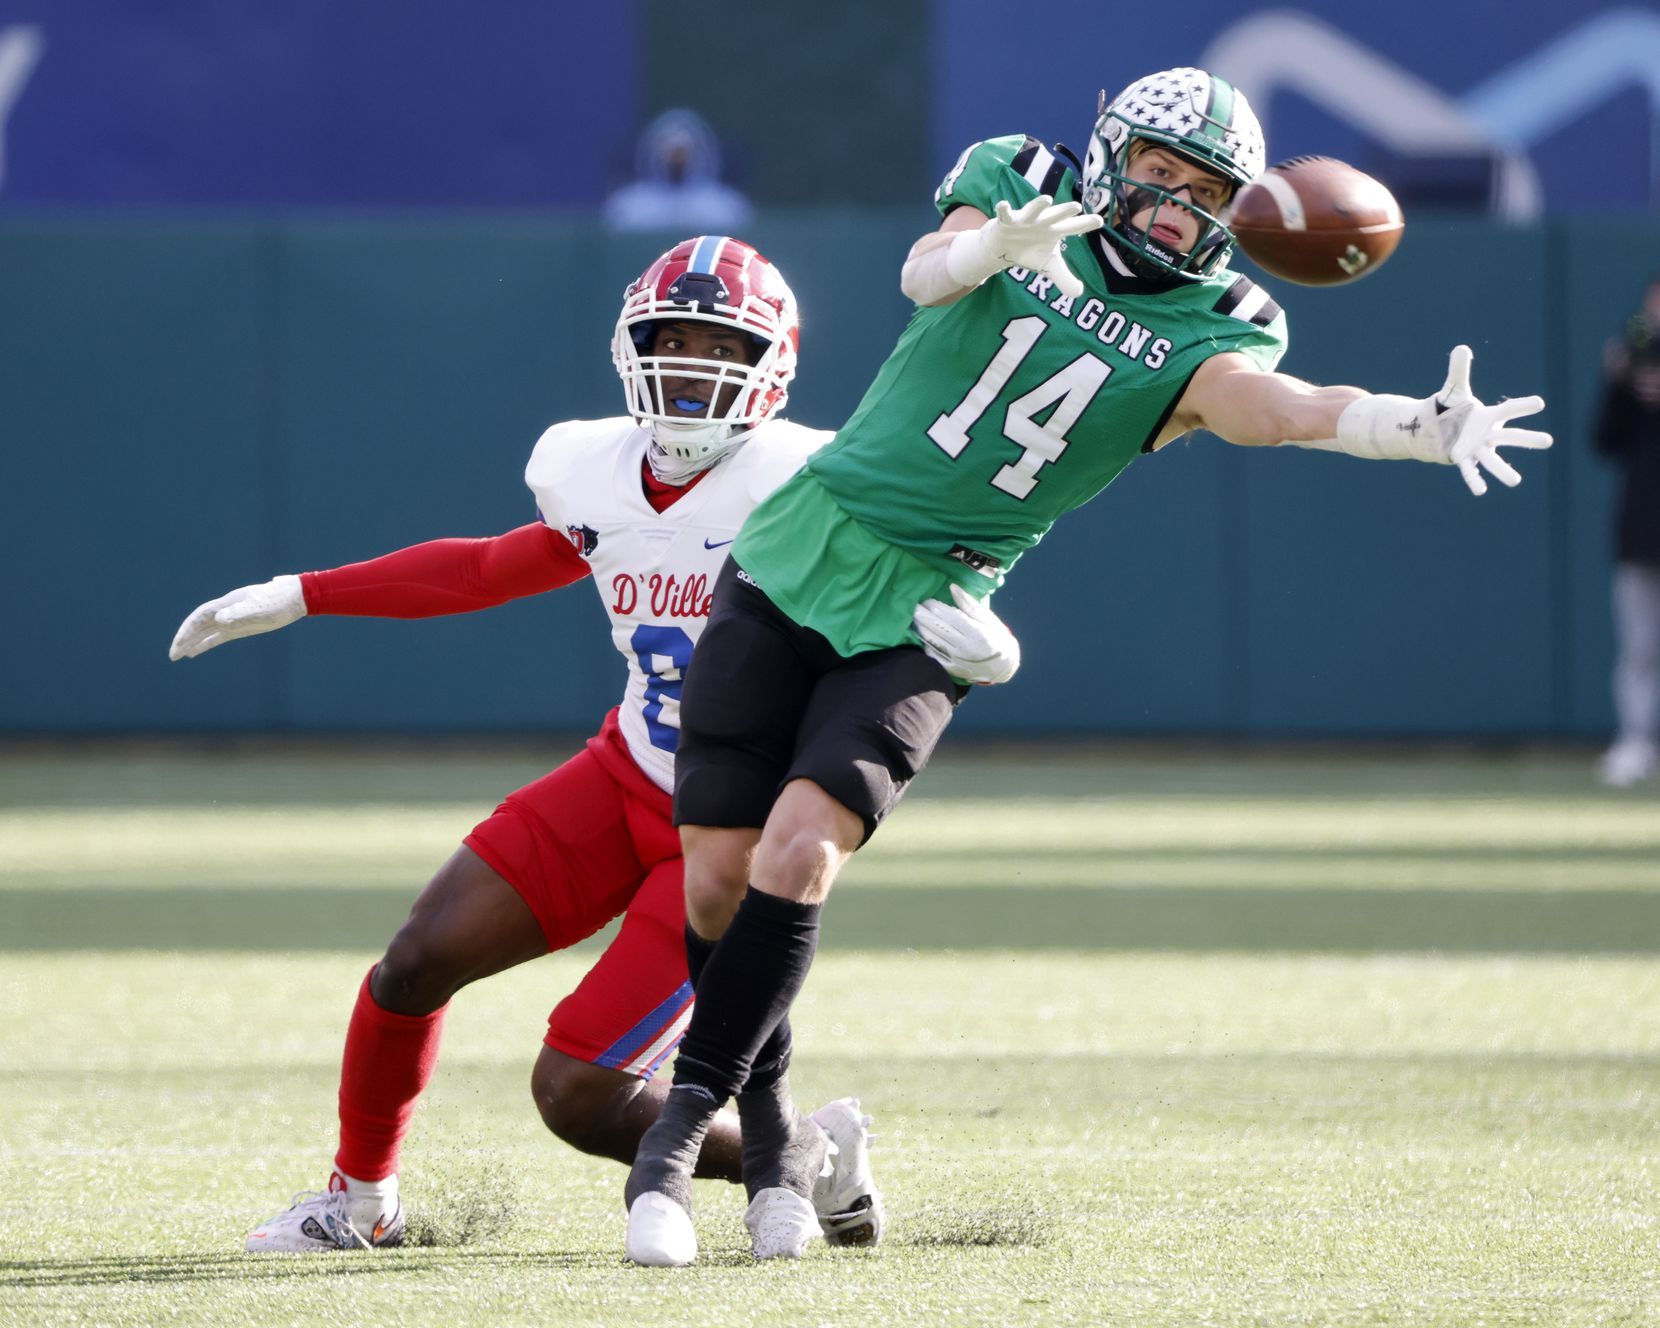 Duncanille's Jadarius Thursby (8) defends as Southlake Carroll's Brady Boyd (14) fails to catch a pass during the Class 6A Division I state high school football semifinal in Arlington, Texas on Jan. 9, 2020. (Michael Ainsworth)